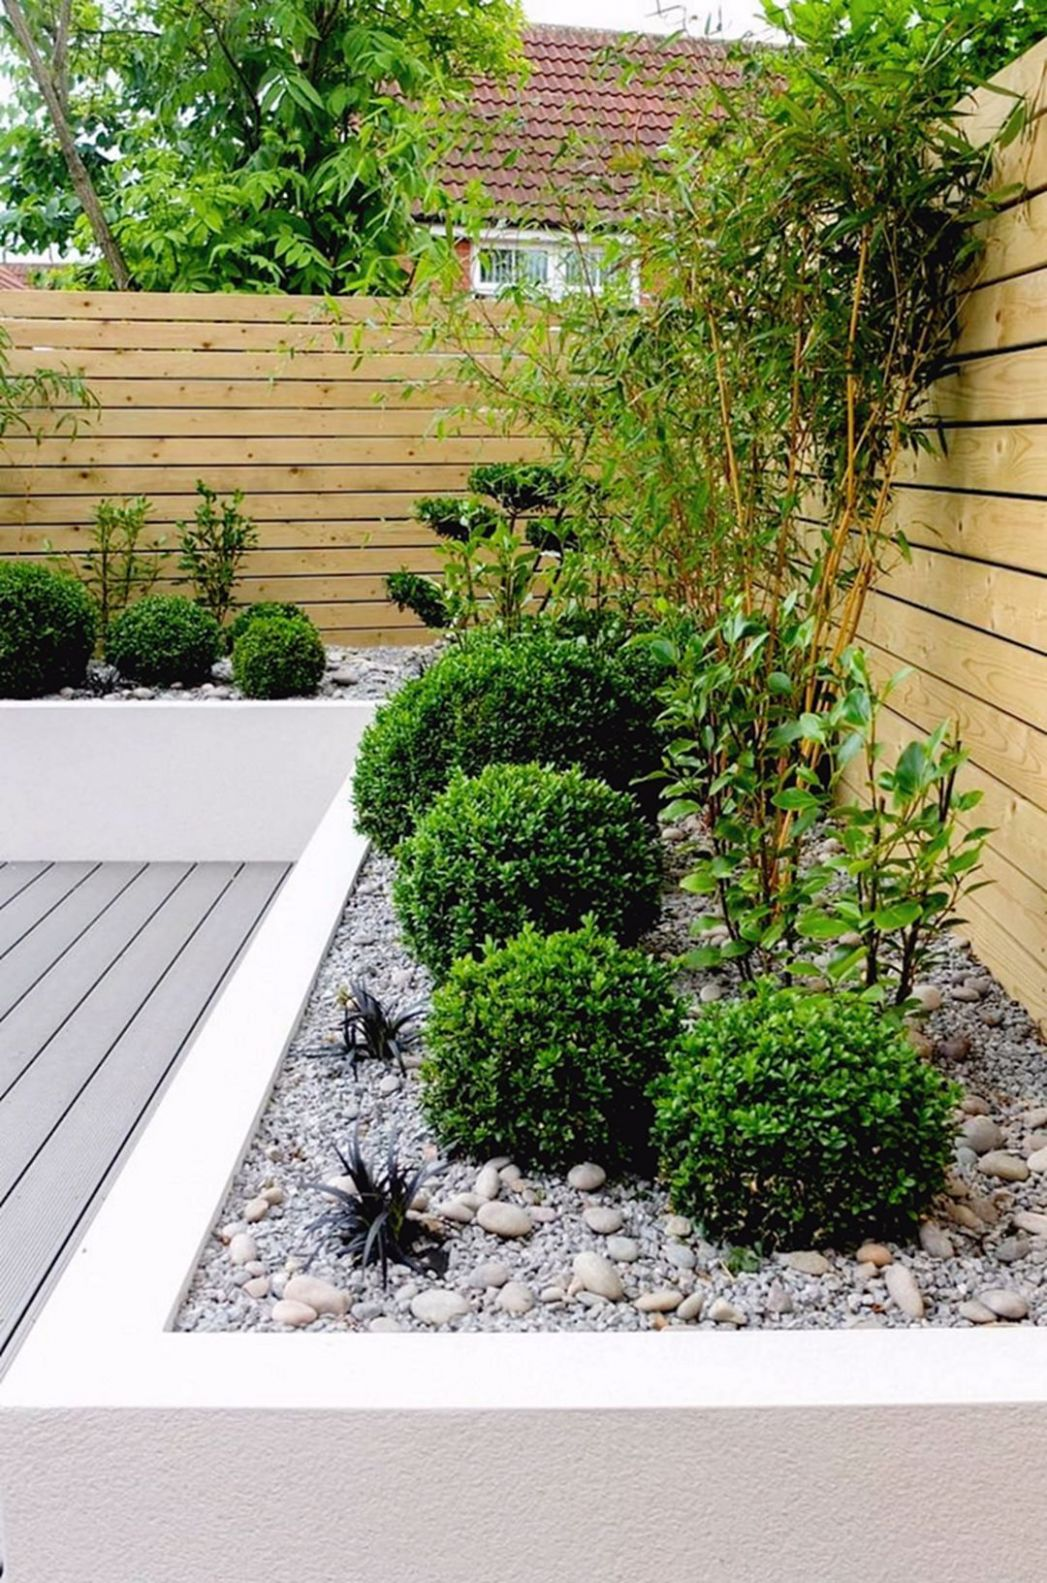 10 Aesthetically And Easy Maintenance Garden Ideas in 10 (With ..